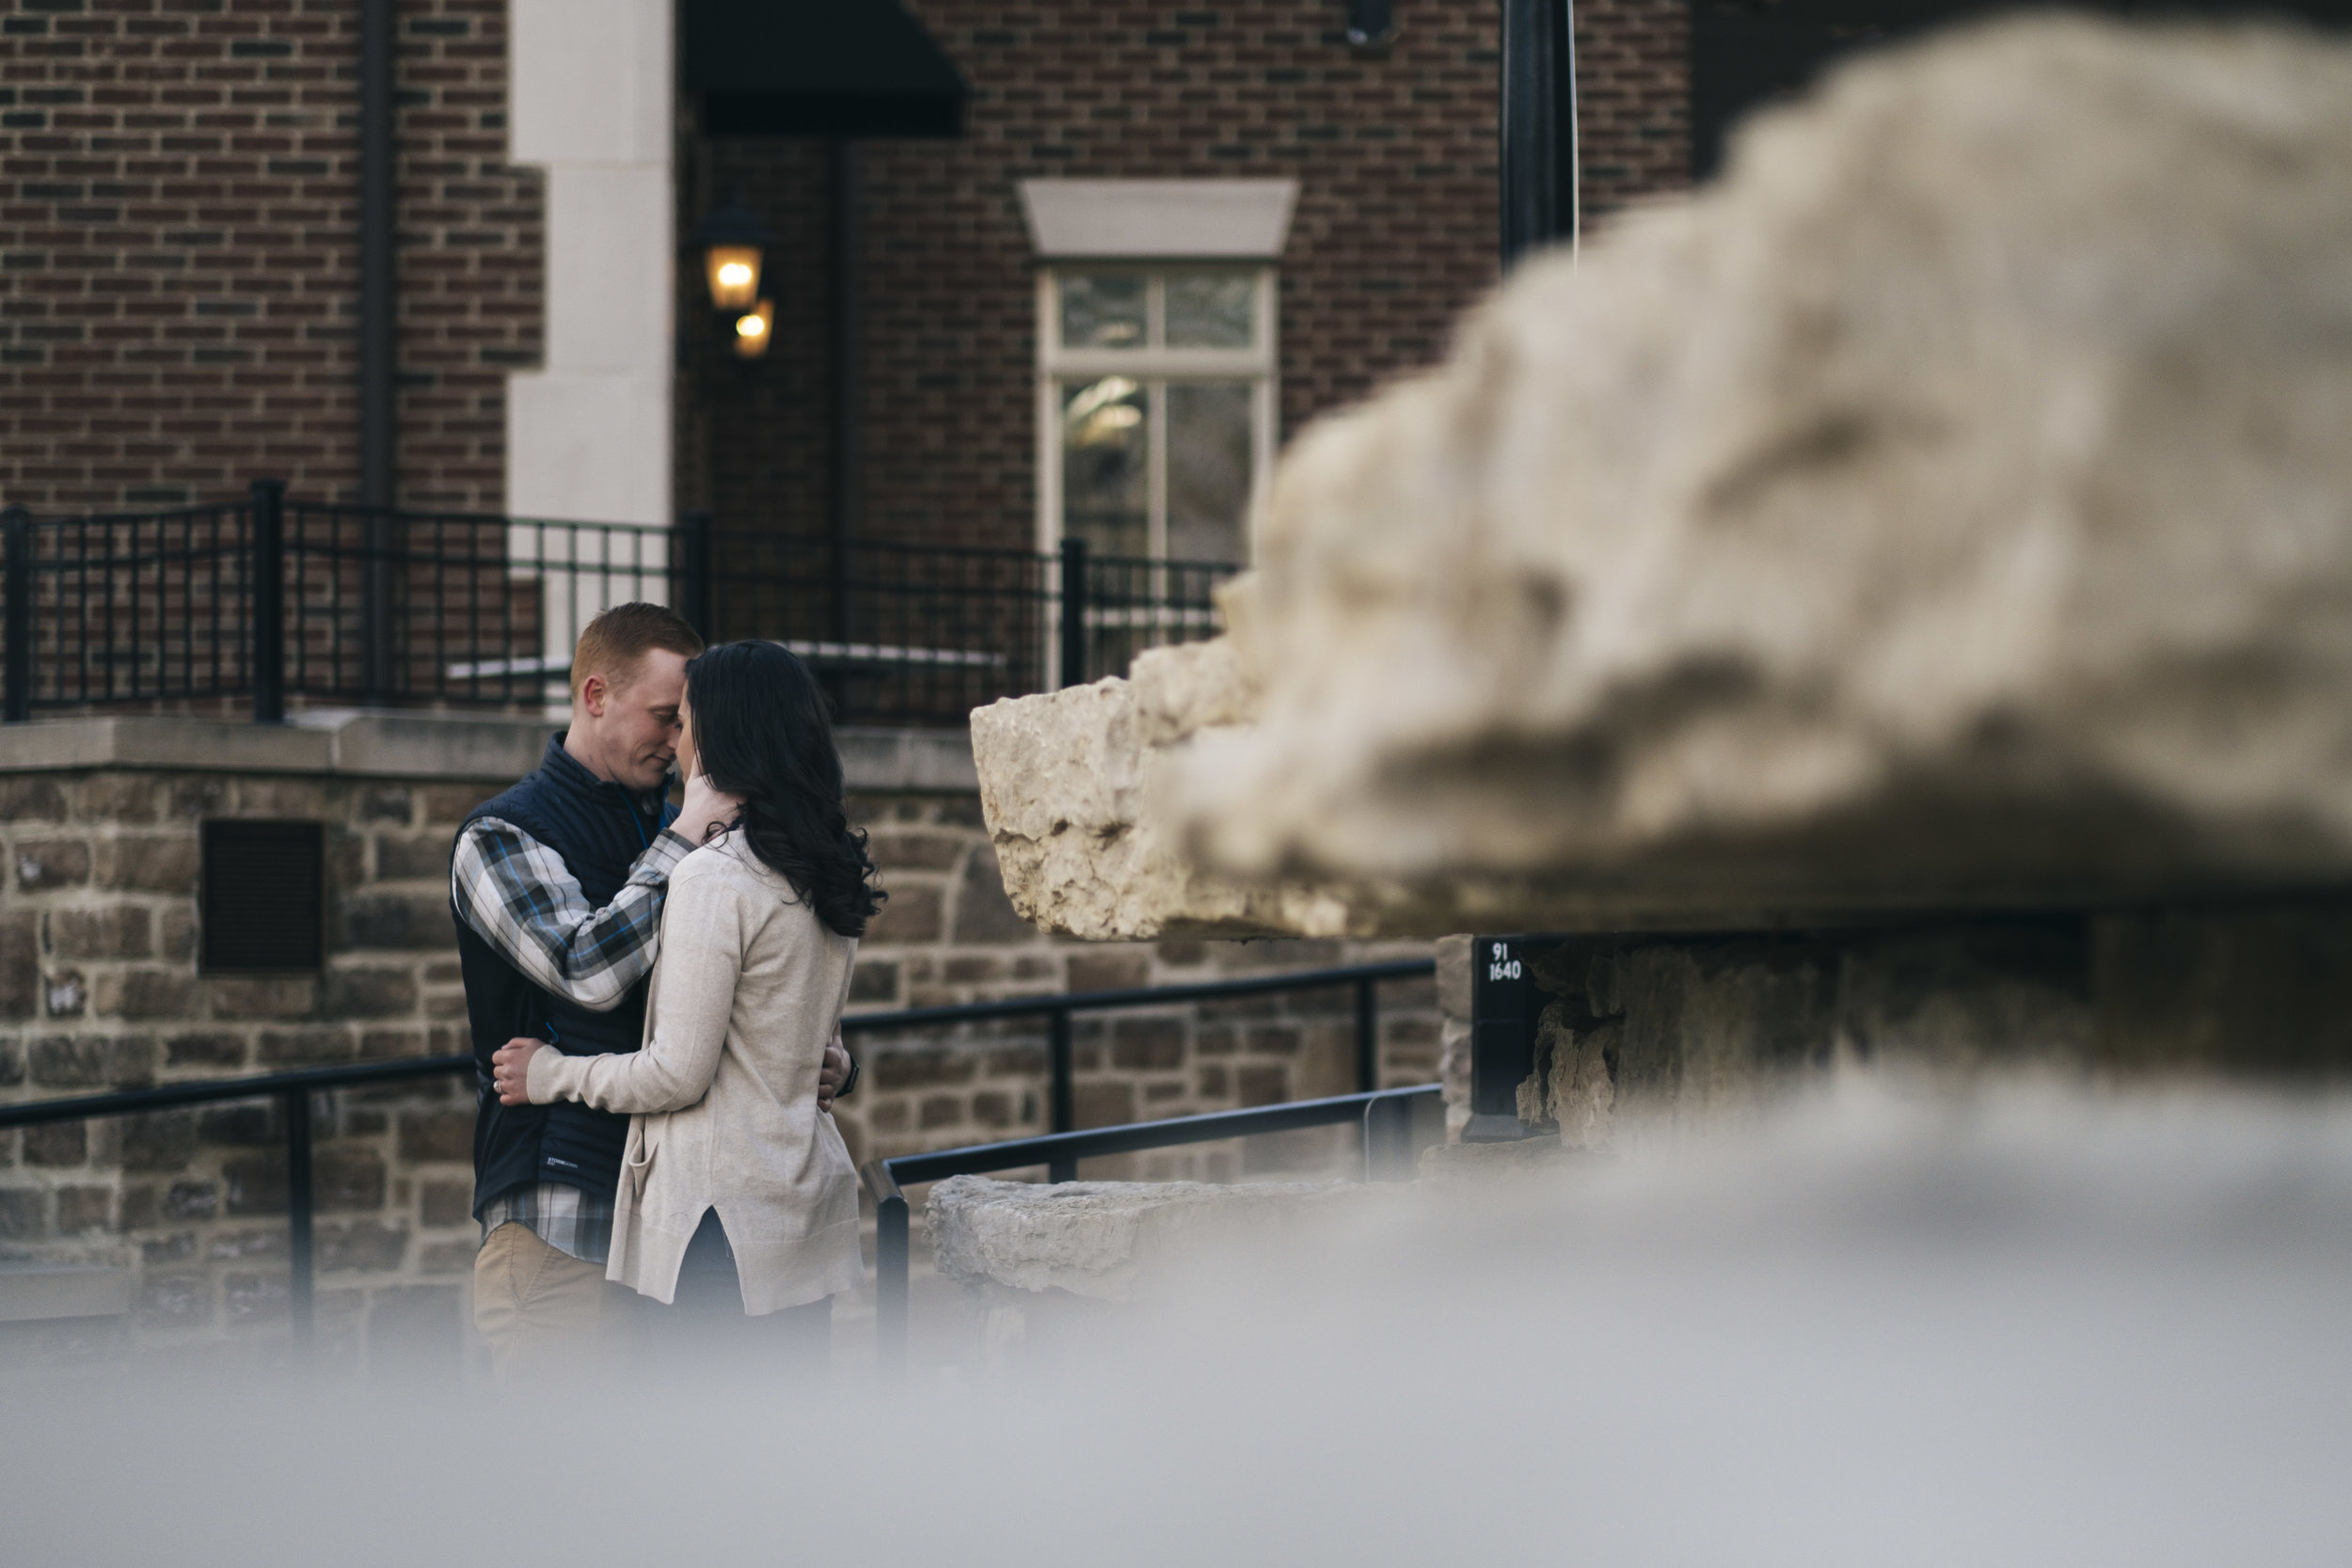 Engagement photography in Dublin, Ohio.